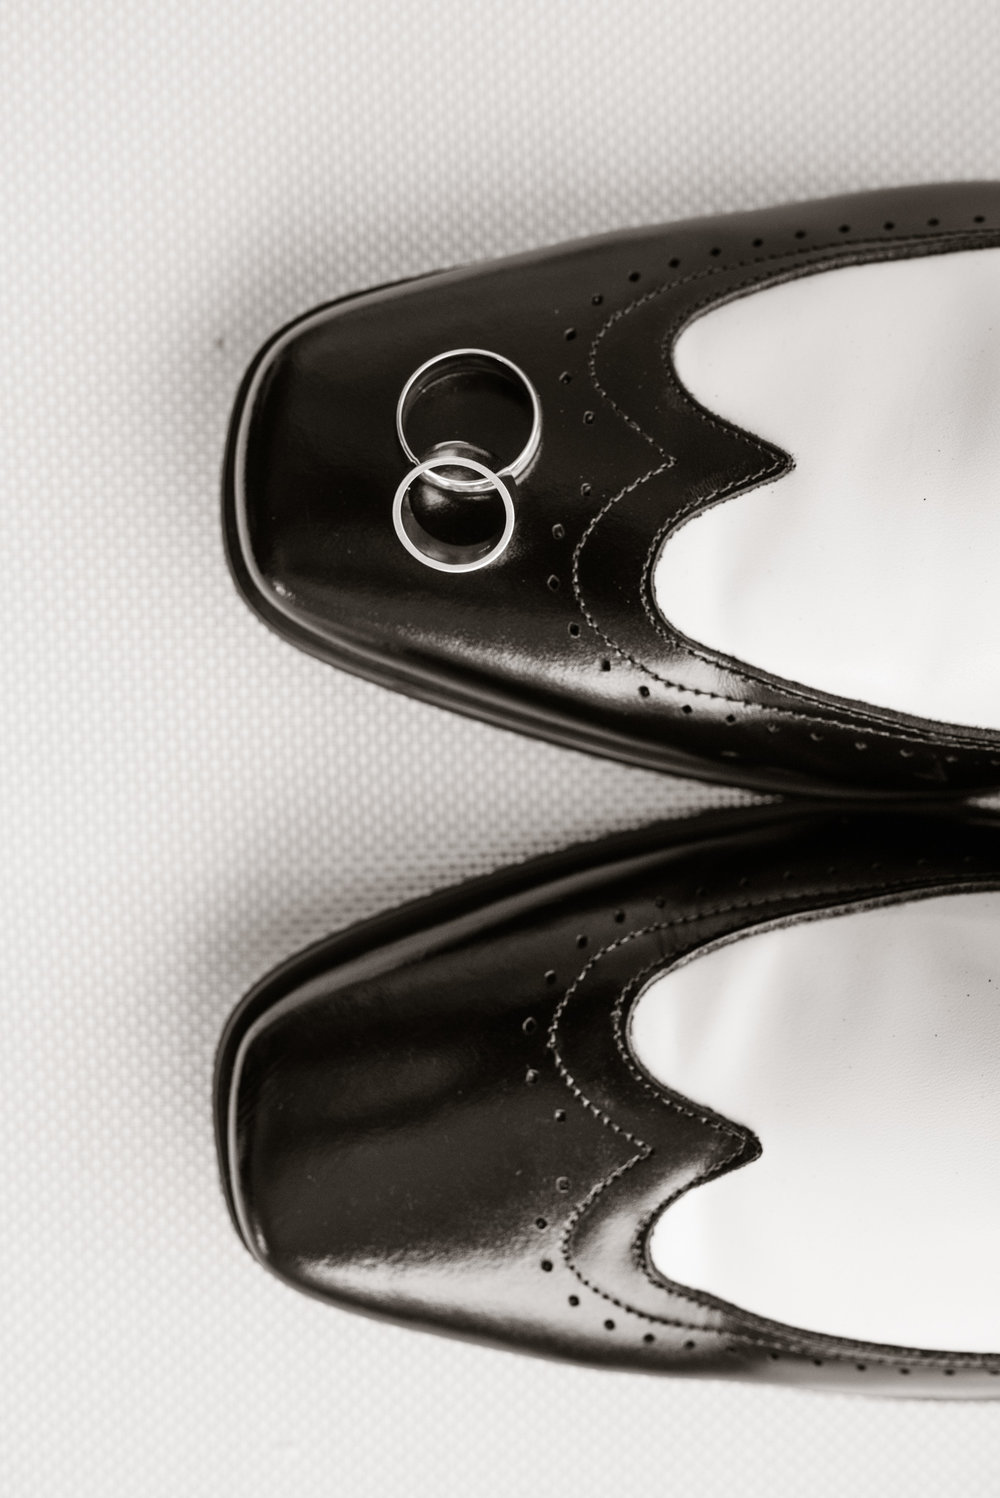 Black and White Oxfords for the Groom